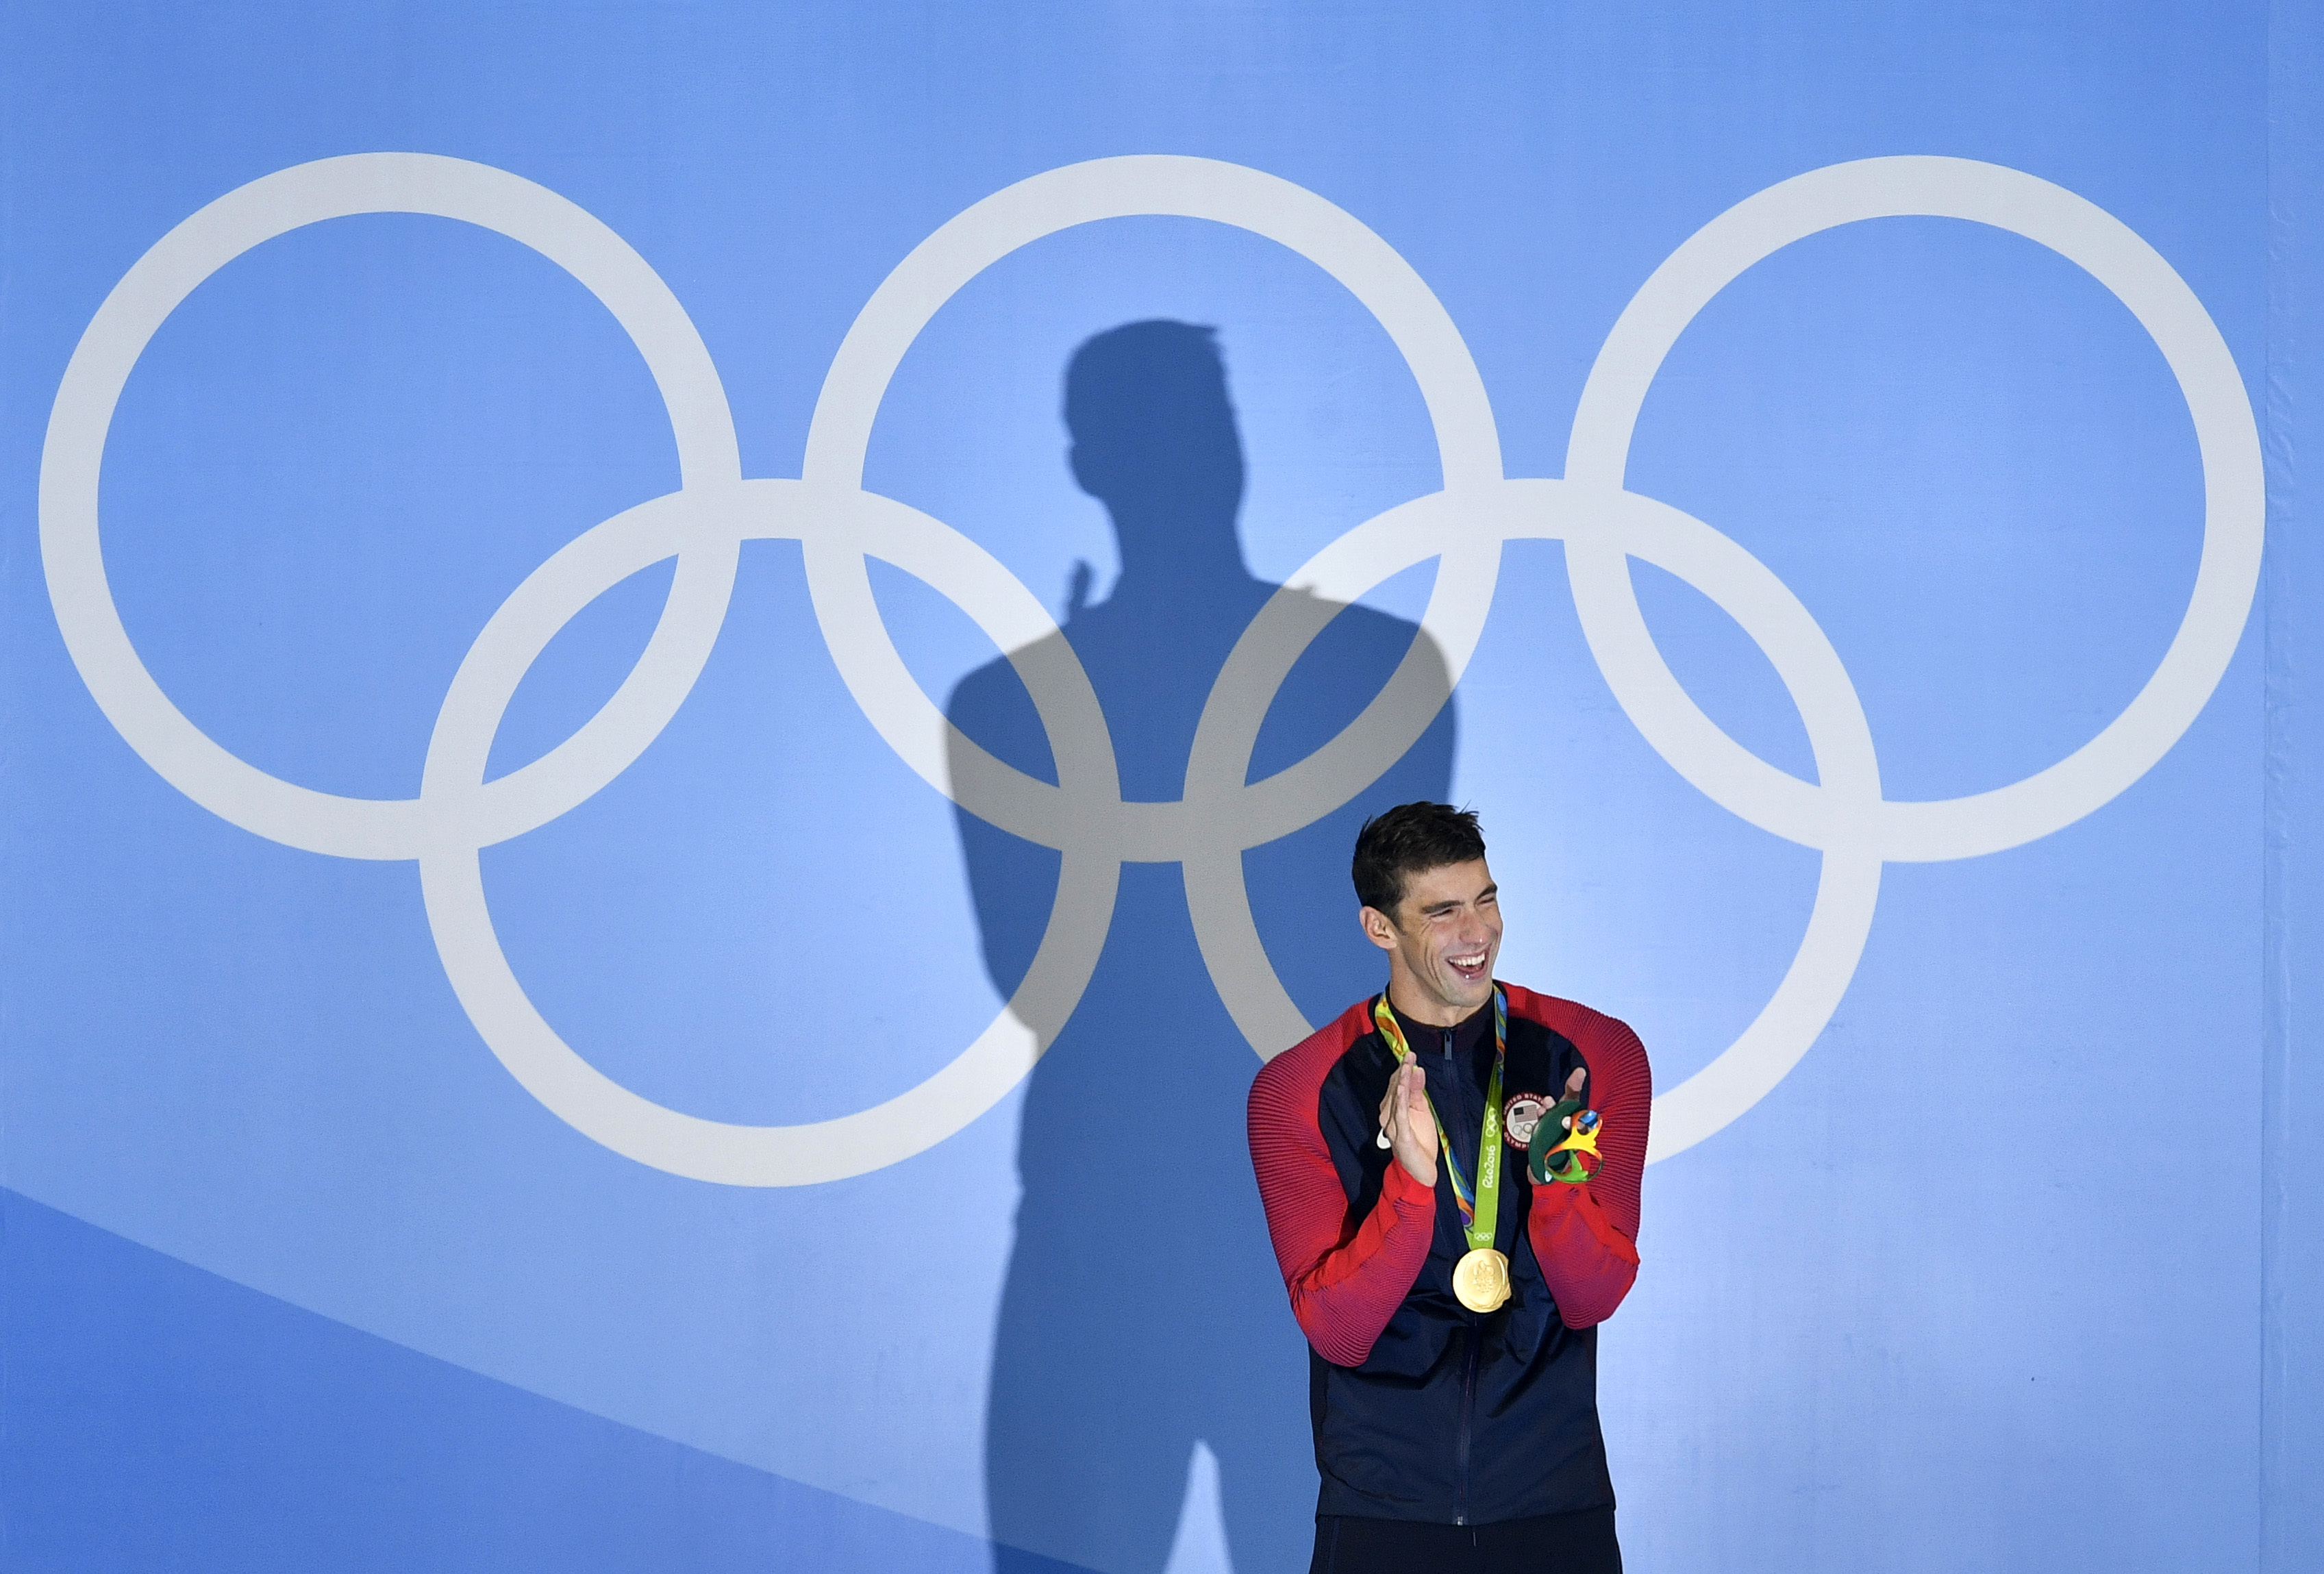 United States' Michael Phelps laughs after he was awarded the gold medal during the medal ceremony for the men's 200-meter butterfly final during the swimming competitions at the 2016 Summer Olympics, Tuesday, Aug. 9, 2016, in Rio de Janeiro, Brazil. (AP